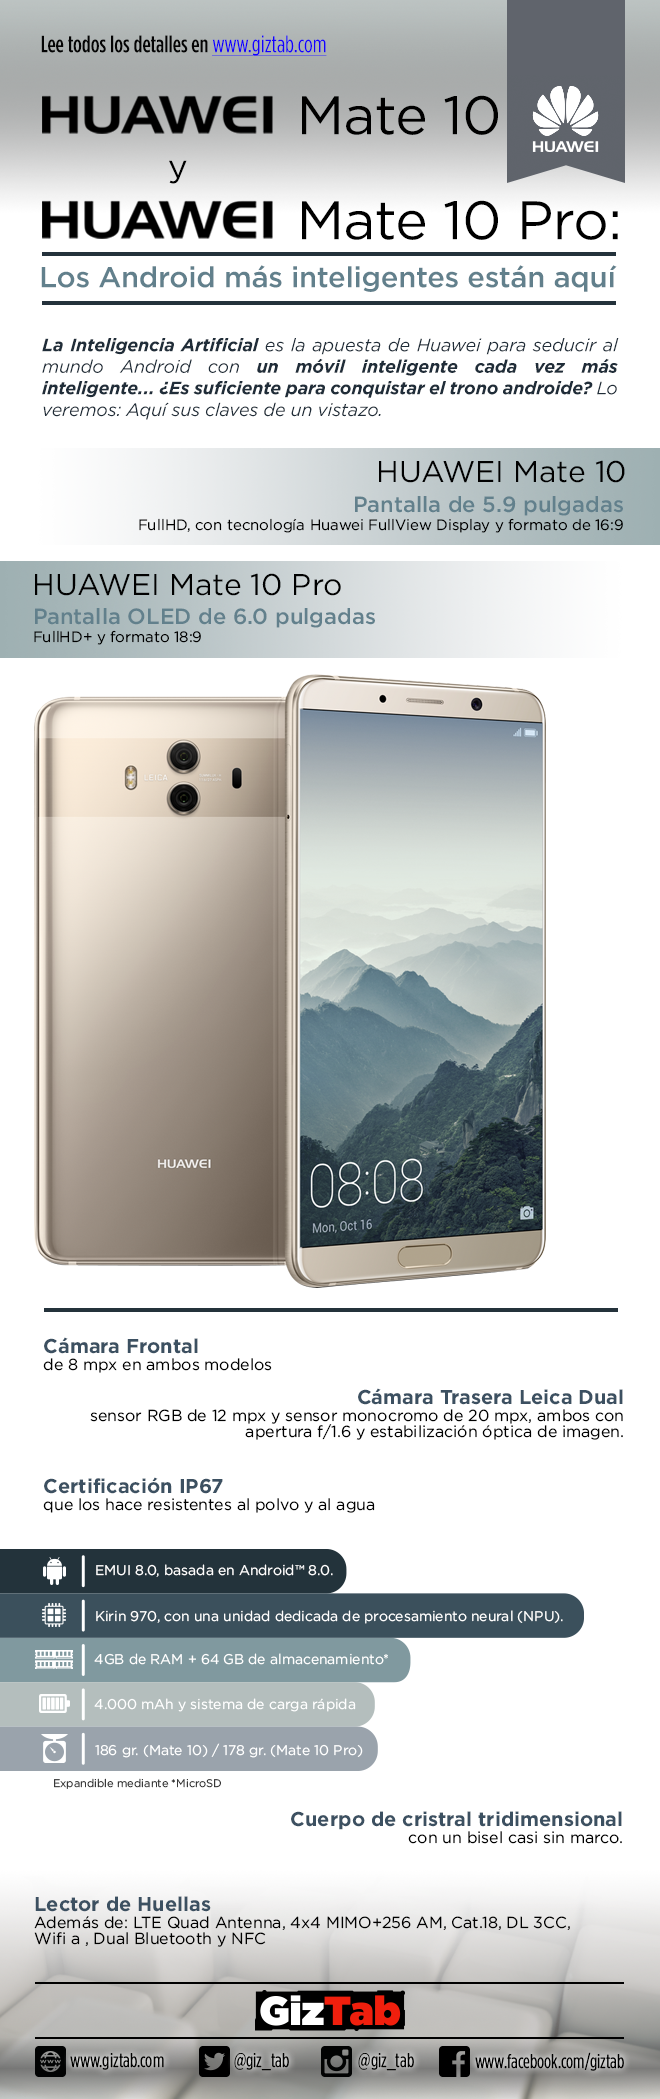 Infografía Huawei Mate 10 y Mate 10 Pro